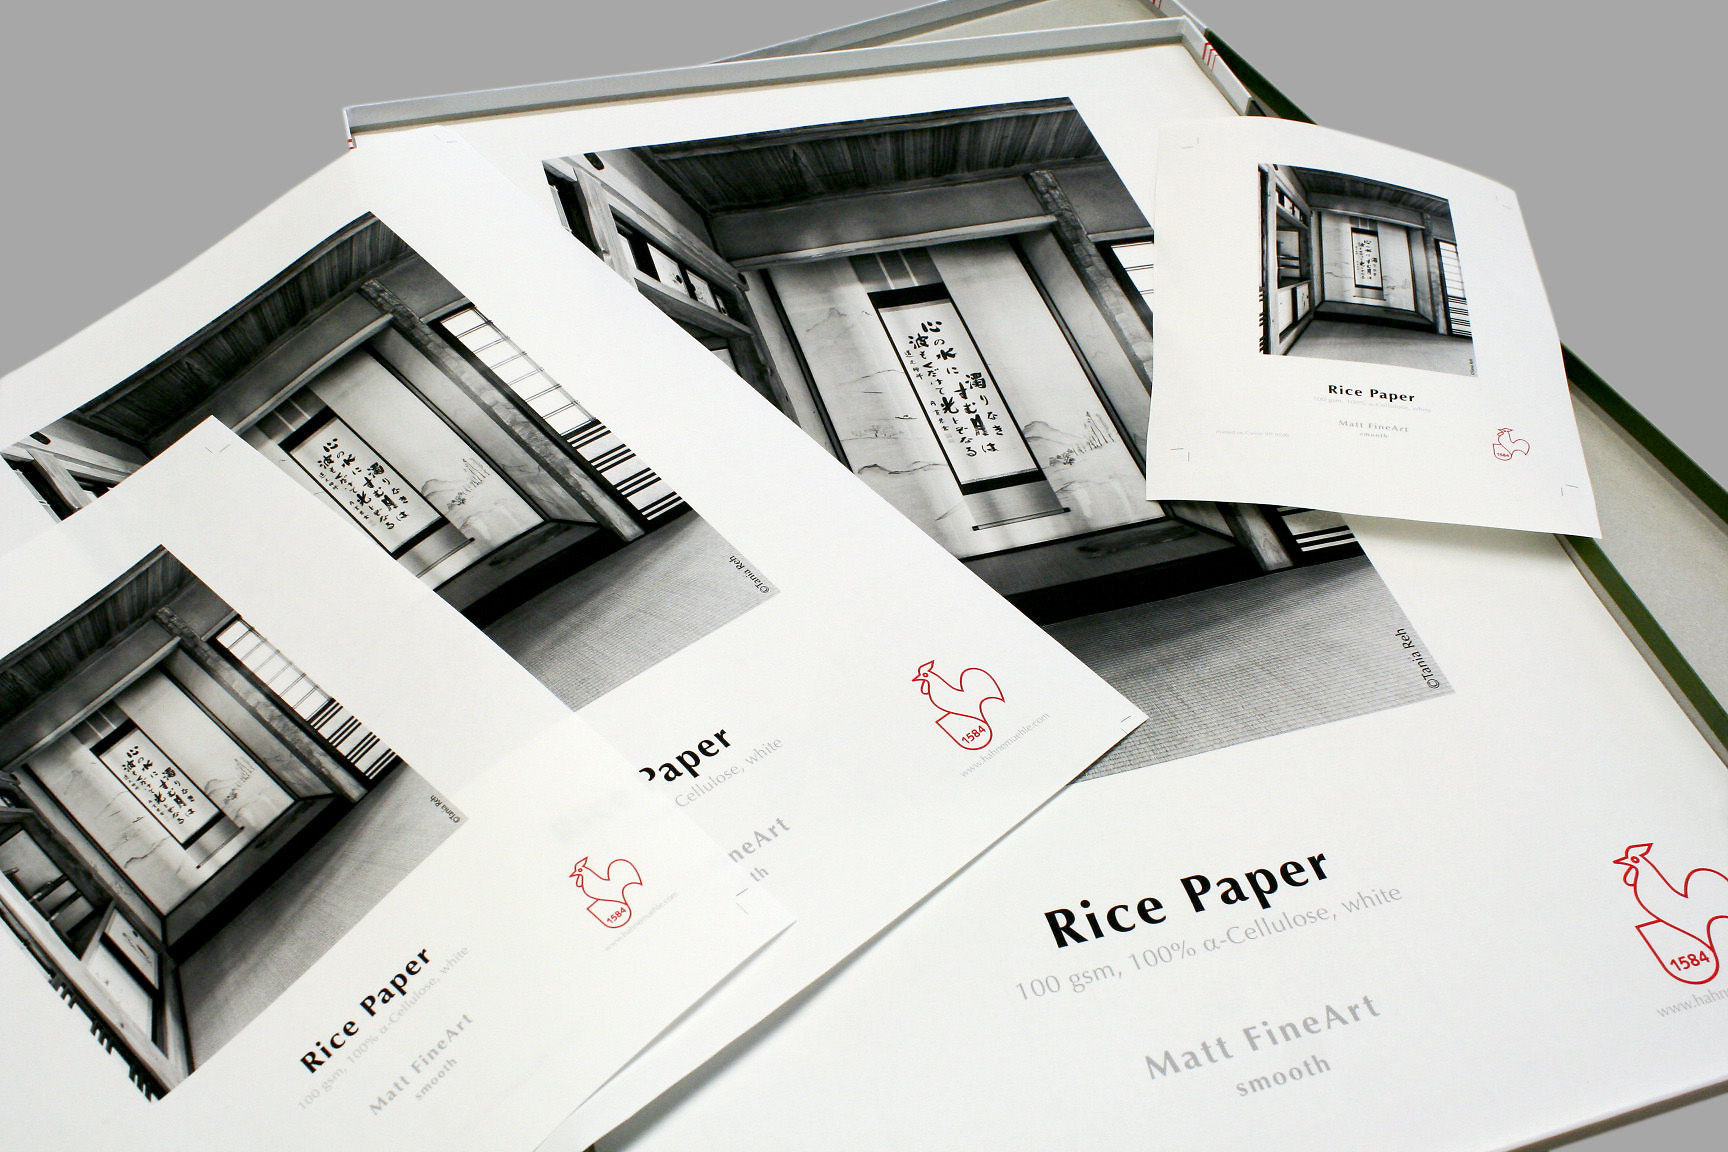 Hahnemühle Rice Paper 100gsm Image